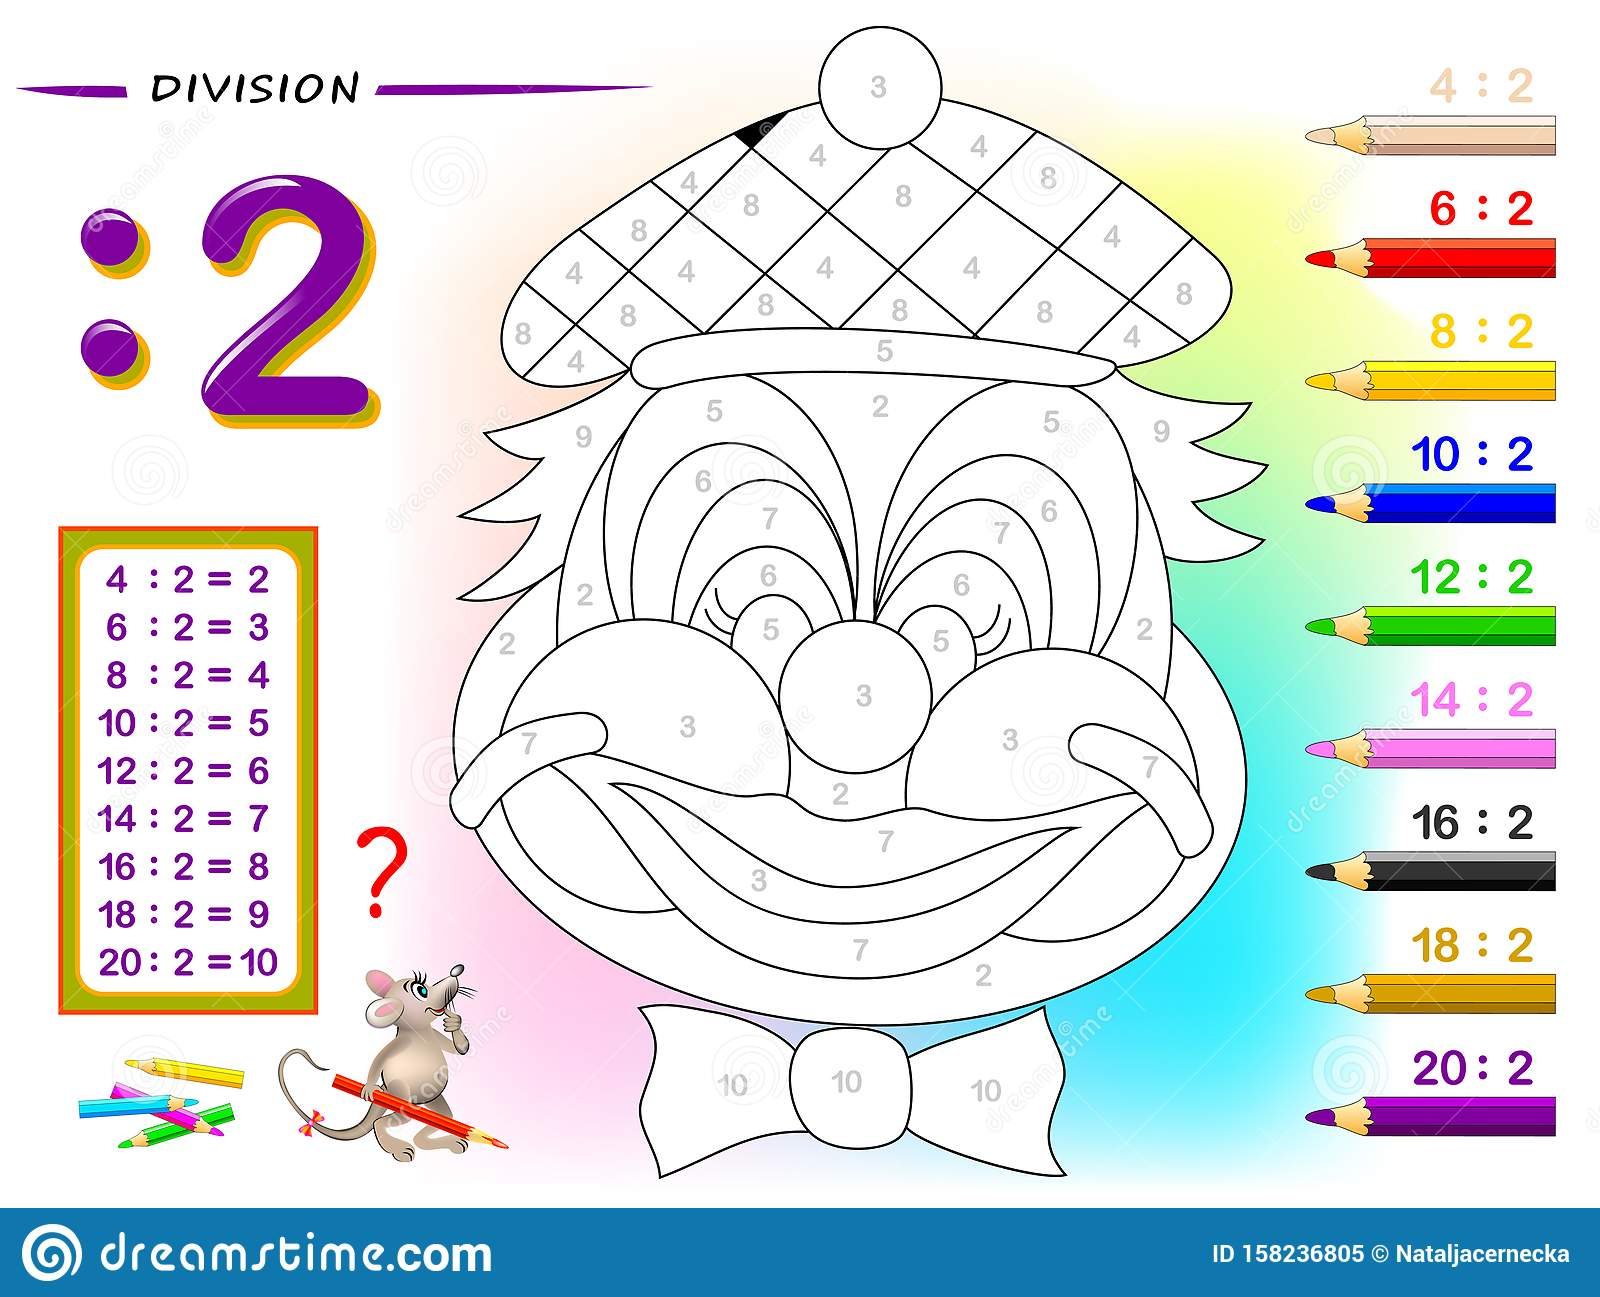 Division By Number 2 Math Exercises For Kids Paint The